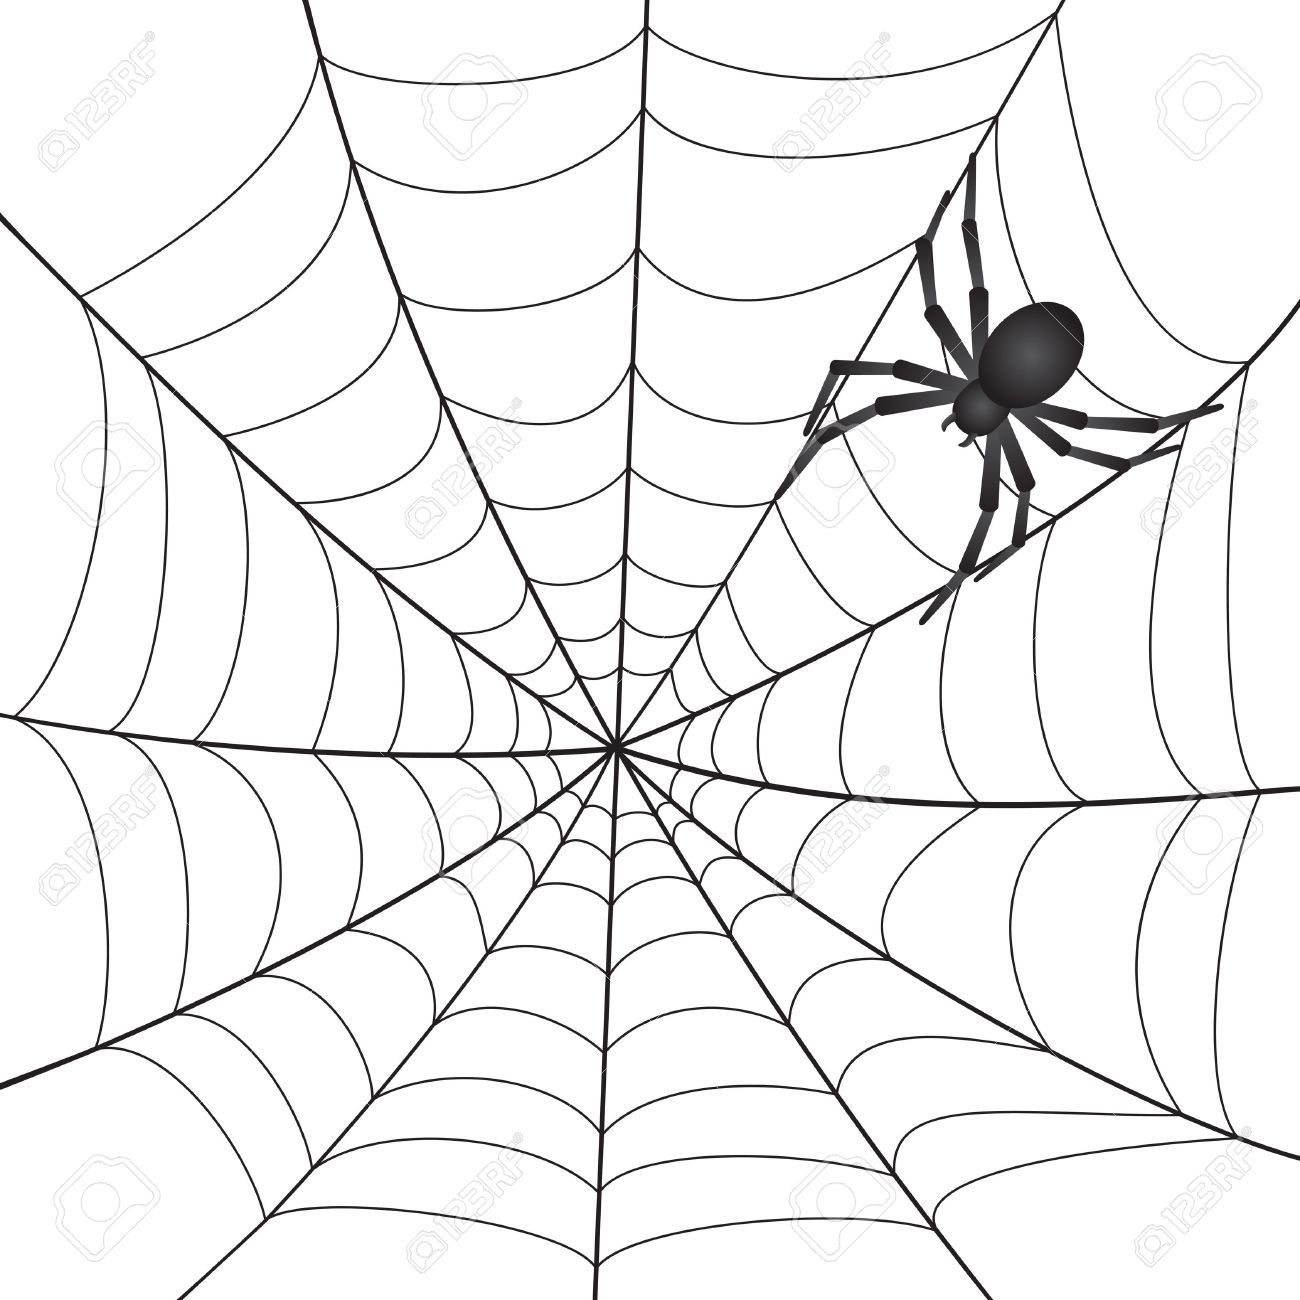 Spider Web Line Drawing at GetDrawings.com.